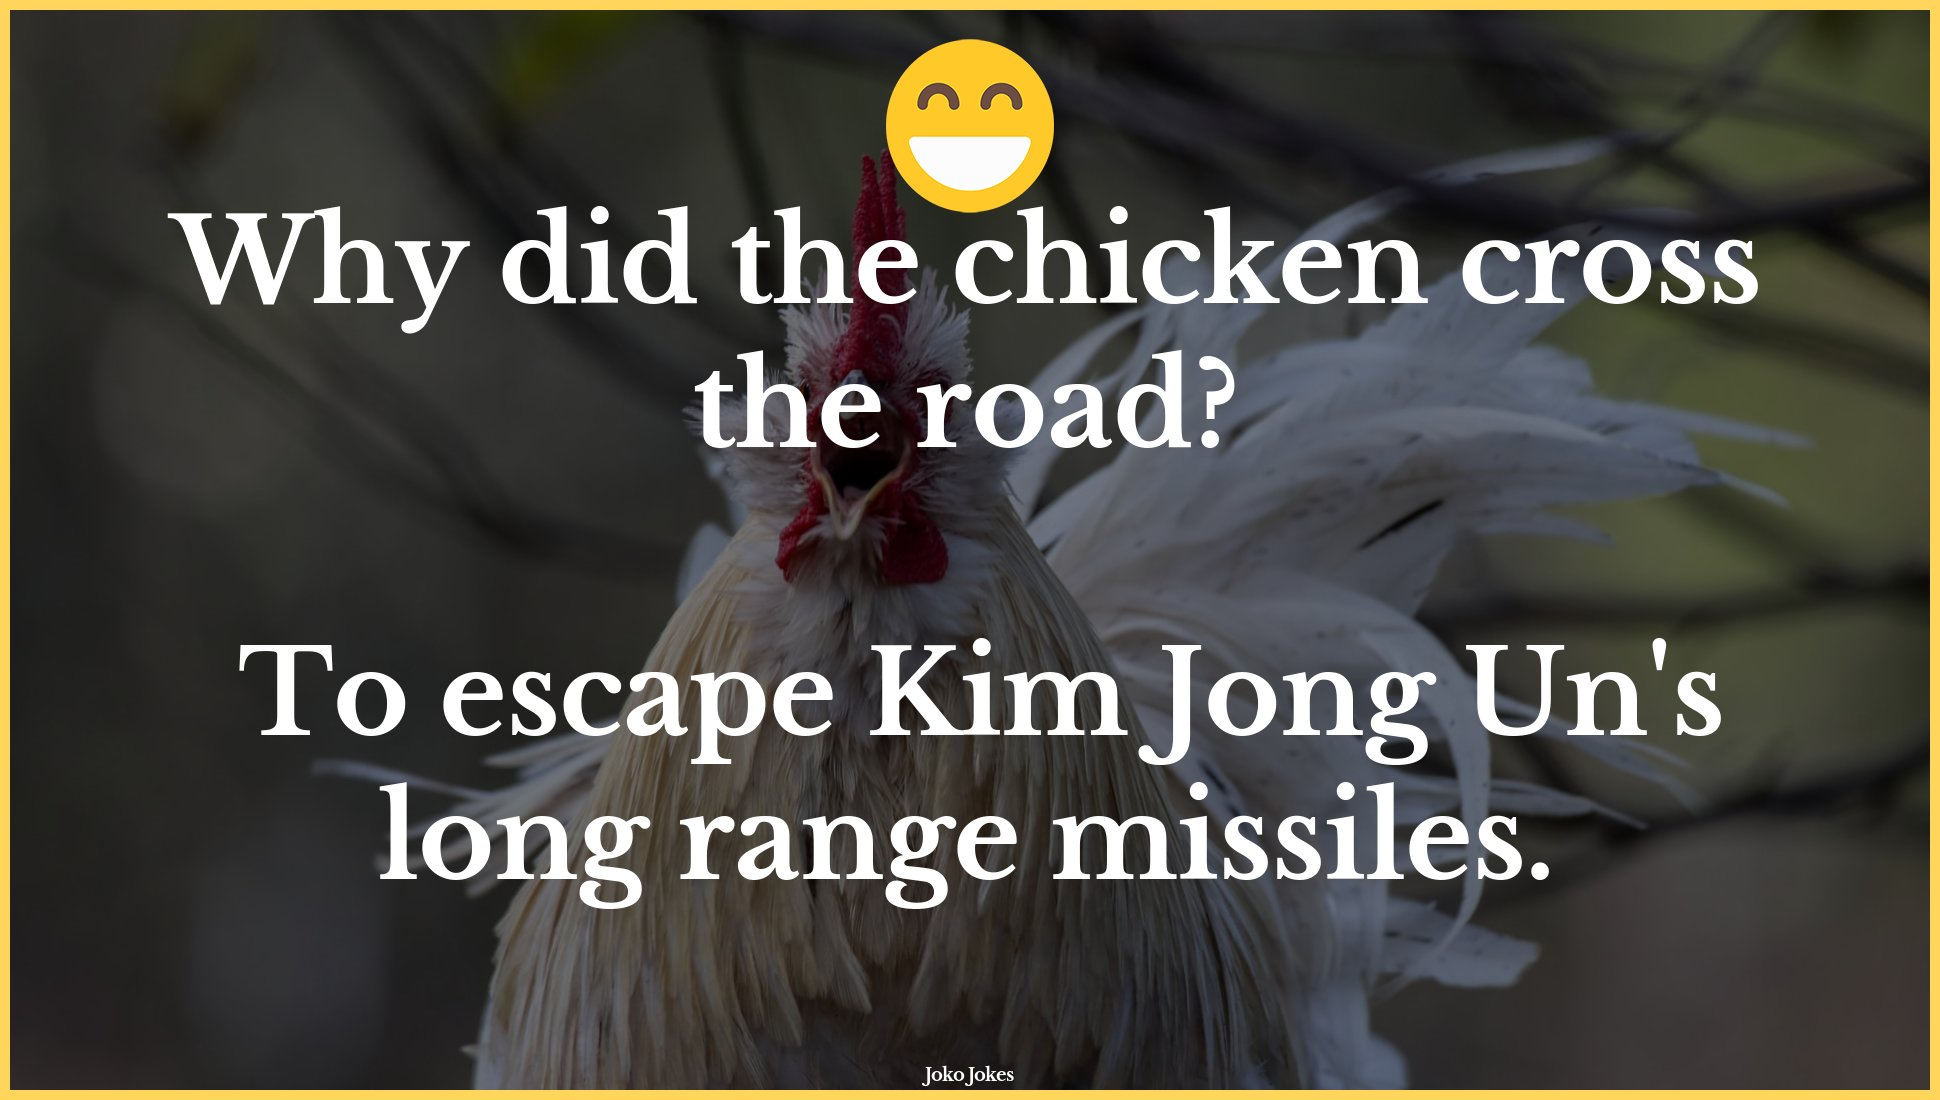 Chicken joke, Why did the chicken cross the road?